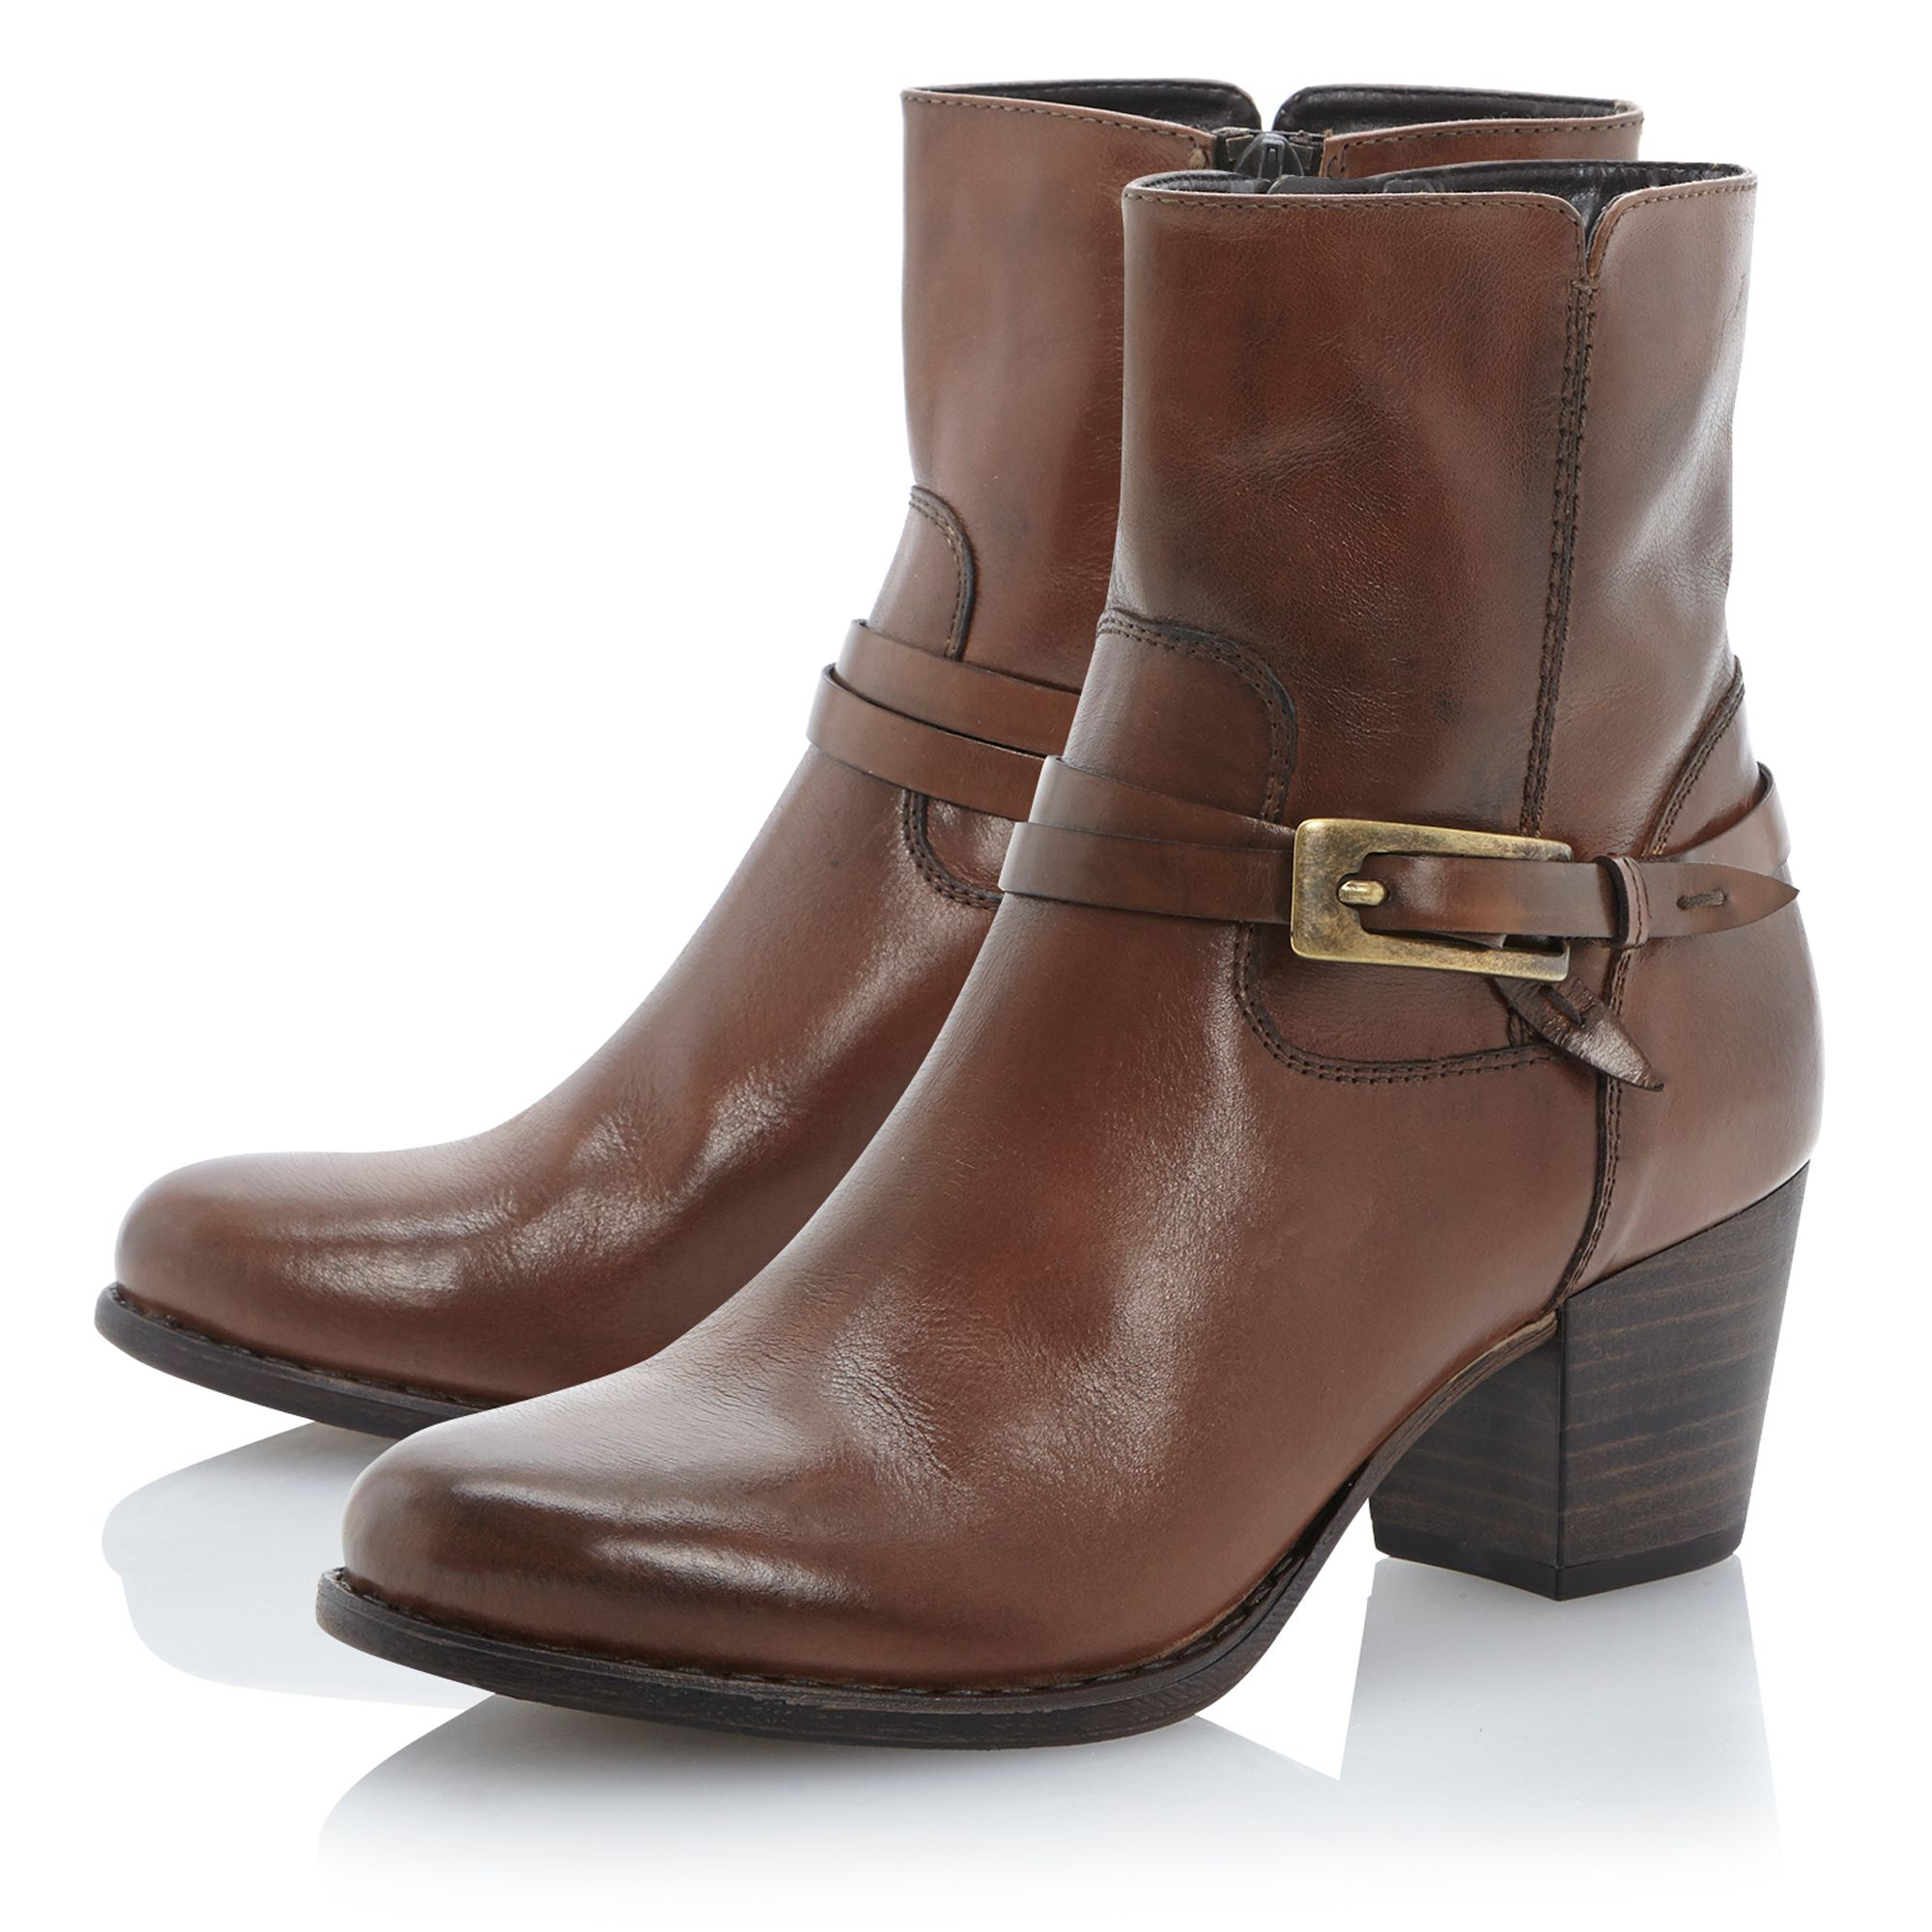 Norwich side buckle detail ankle boots